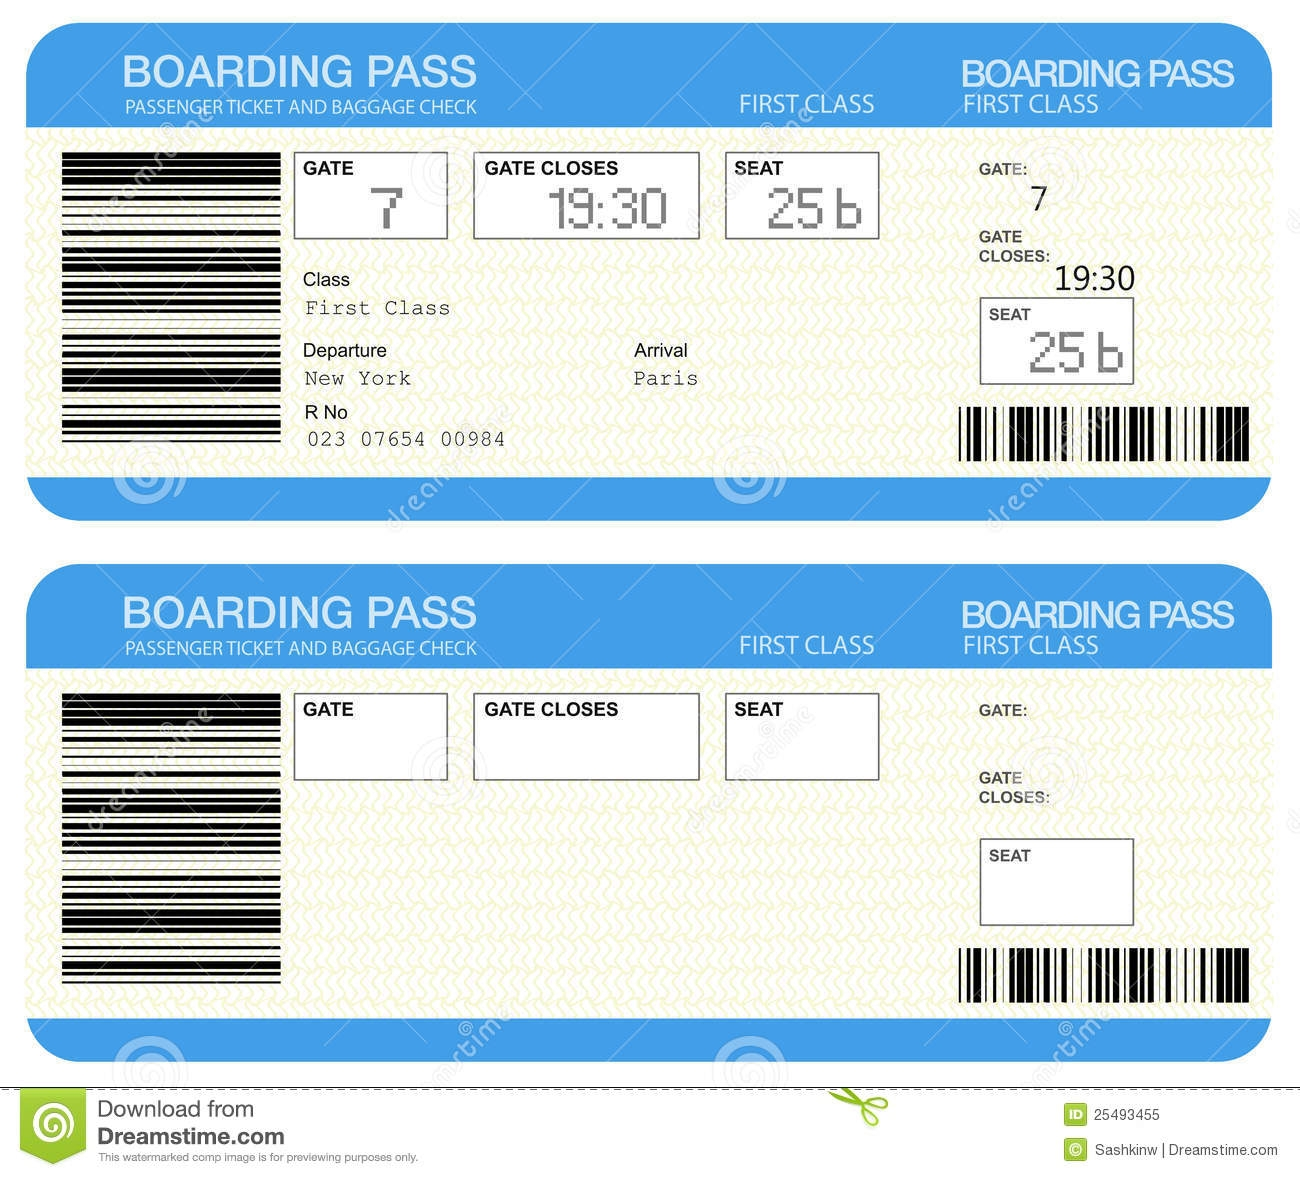 29 Images Of United Boarding Pass Template Masorler